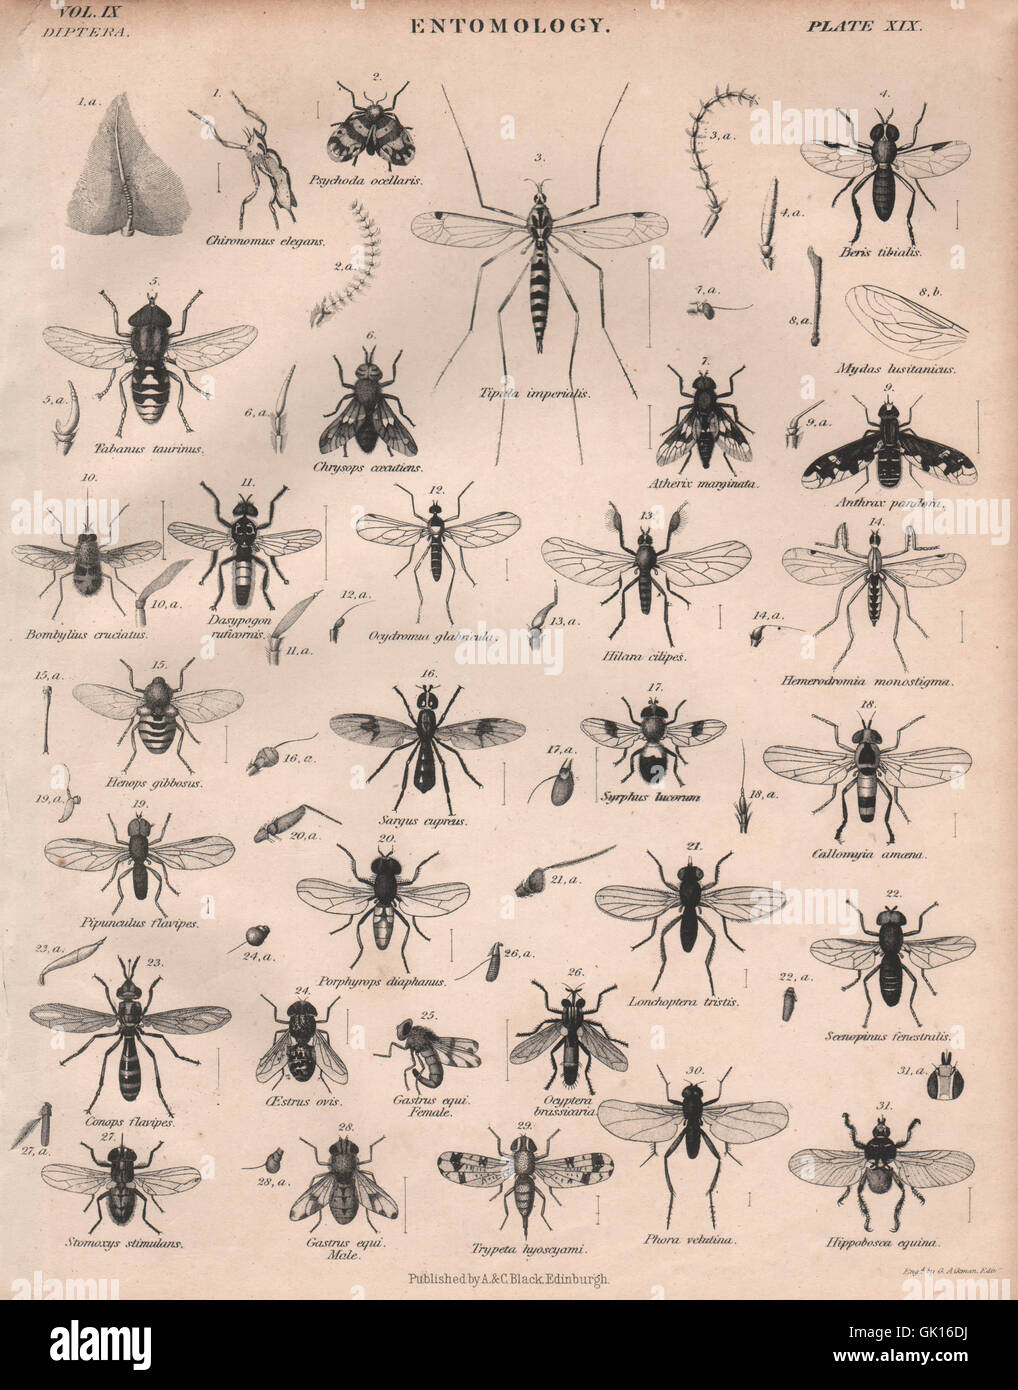 ENTOMOLOGY 19. Insects flies. BRITANNICA, antique print 1860 - Stock Image